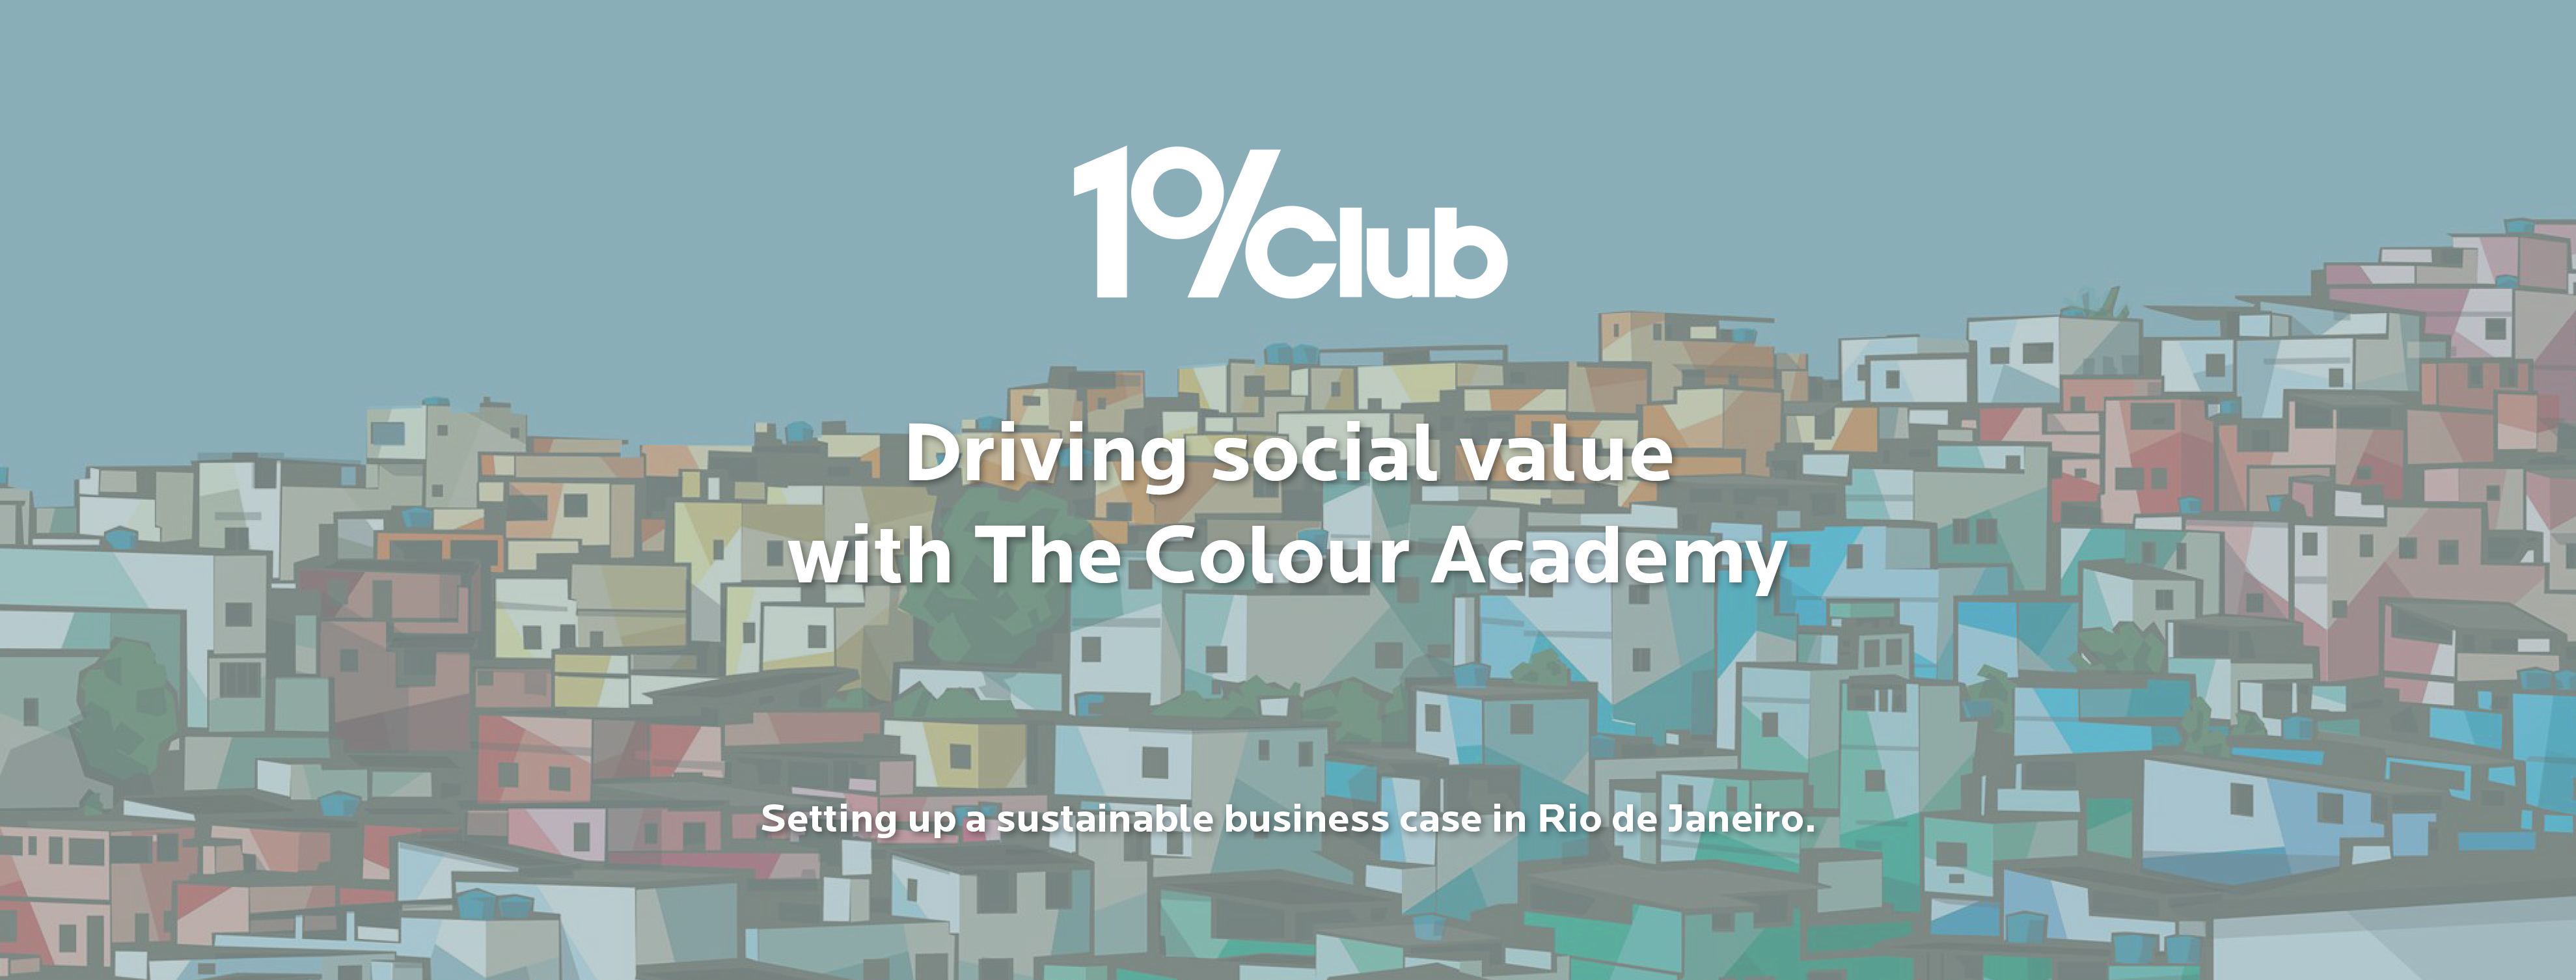 Driving social value with sustainable paint